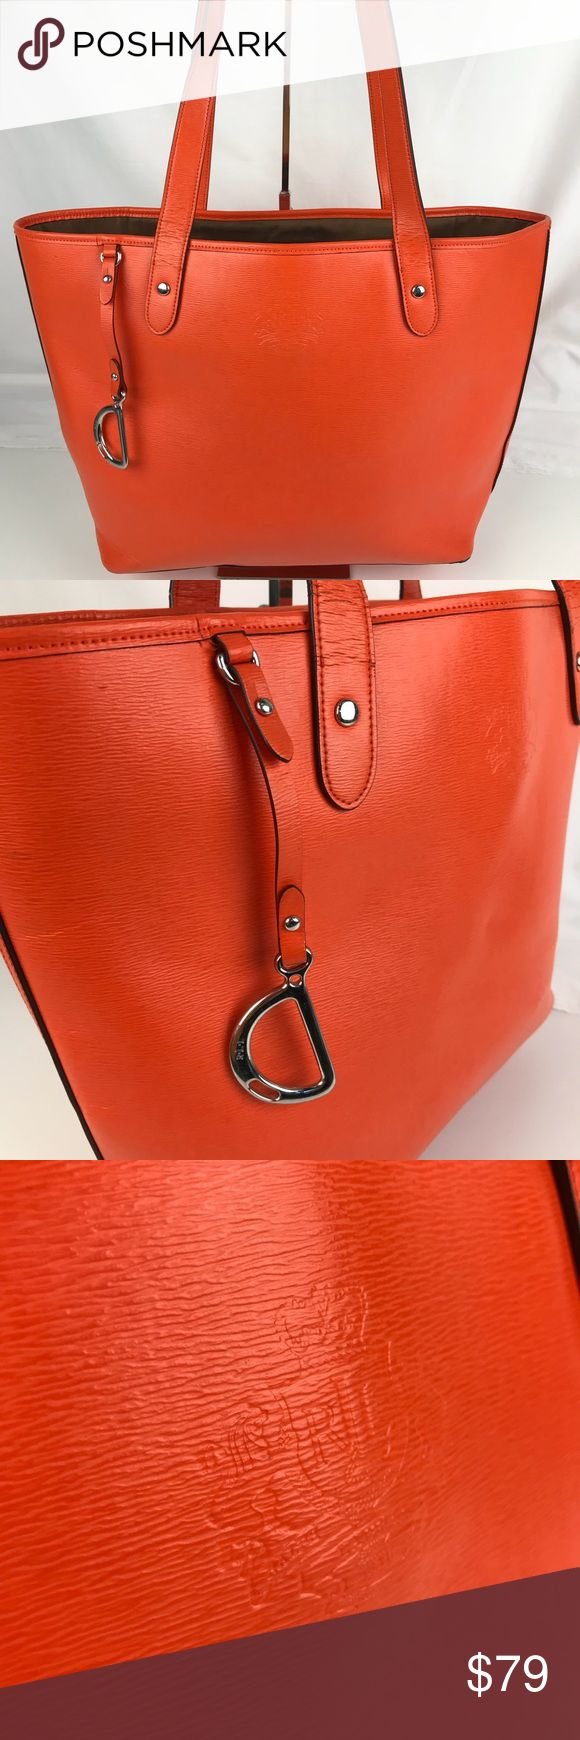 """Ralph Lauren Newberry Classic Orange Tote Authentic. Used. A few marks on bottom exterior and wear on handles. Please see photos.  Lauren Ralph Lauren Newbury Classic Orange Leather Tote Bag Handbag. 14""""L x 9""""H x 4.5""""D with 8.5"""" Strap drop. Silver hardware with hang tag. Zip top. 1 zipper and 4 slip pockets inside. RB1106  Thank you for your interest!   PLEASE - NO TRADES / NO LOW BALL OFFERS / NO OFFERS IN COMMENTS - USE THE OFFER LINK :-) Ralph Lauren Bags Totes"""